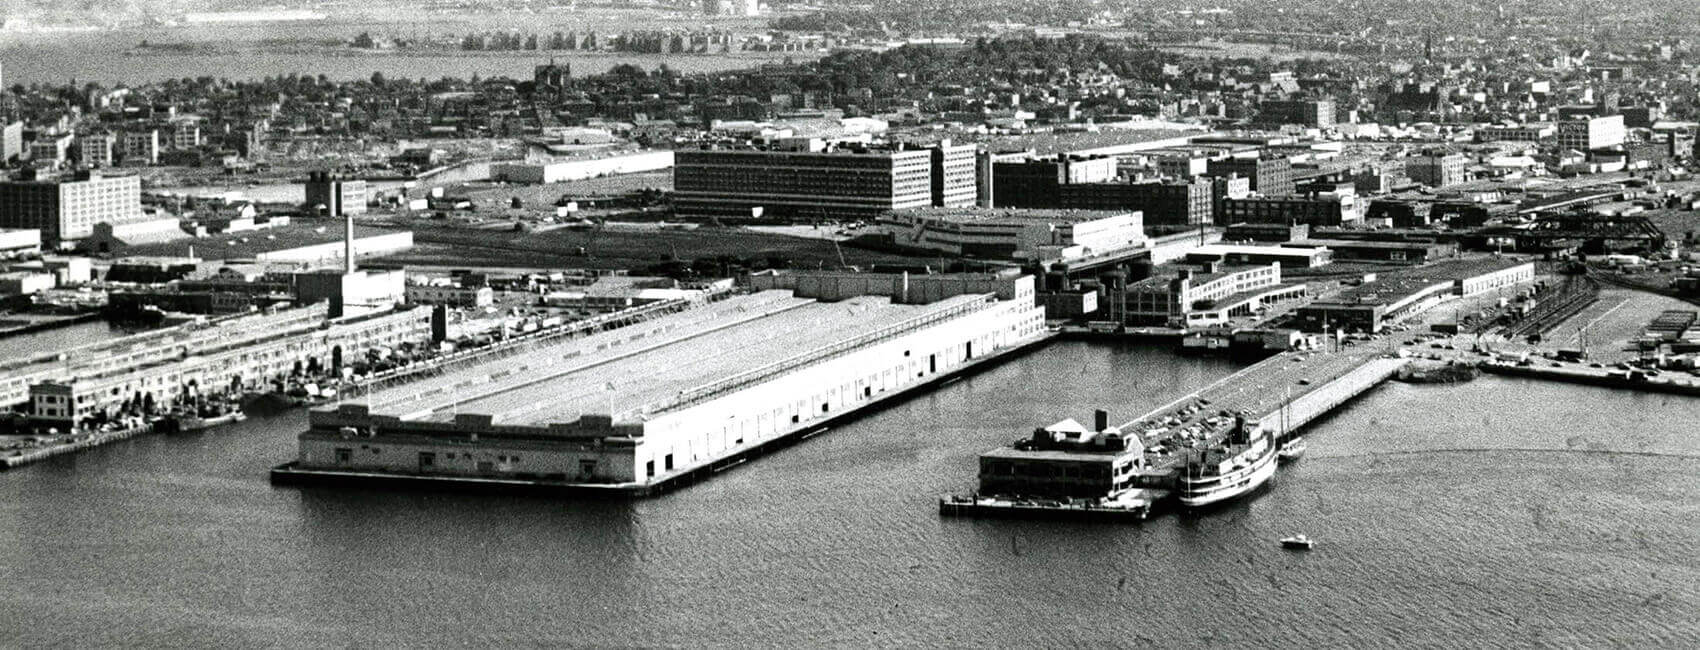 PIER 4 History | OLD Boston Seaport | Boston PIER